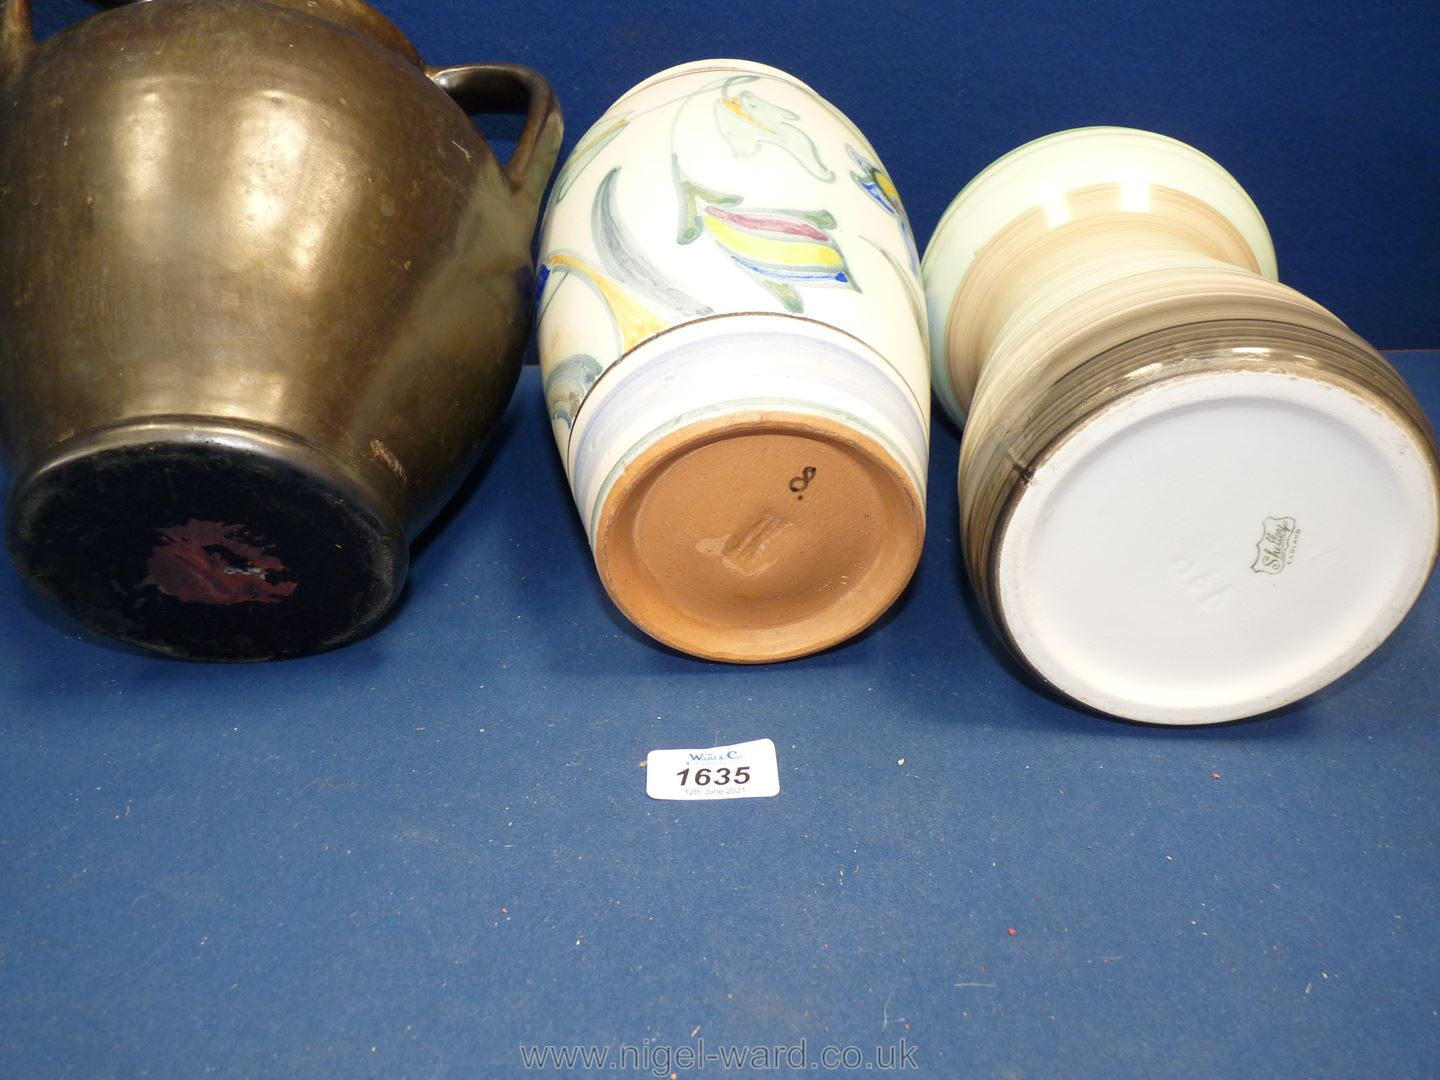 Three vases including Collard Honiton, Shelley and triple handled with metallic finish. - Image 2 of 2